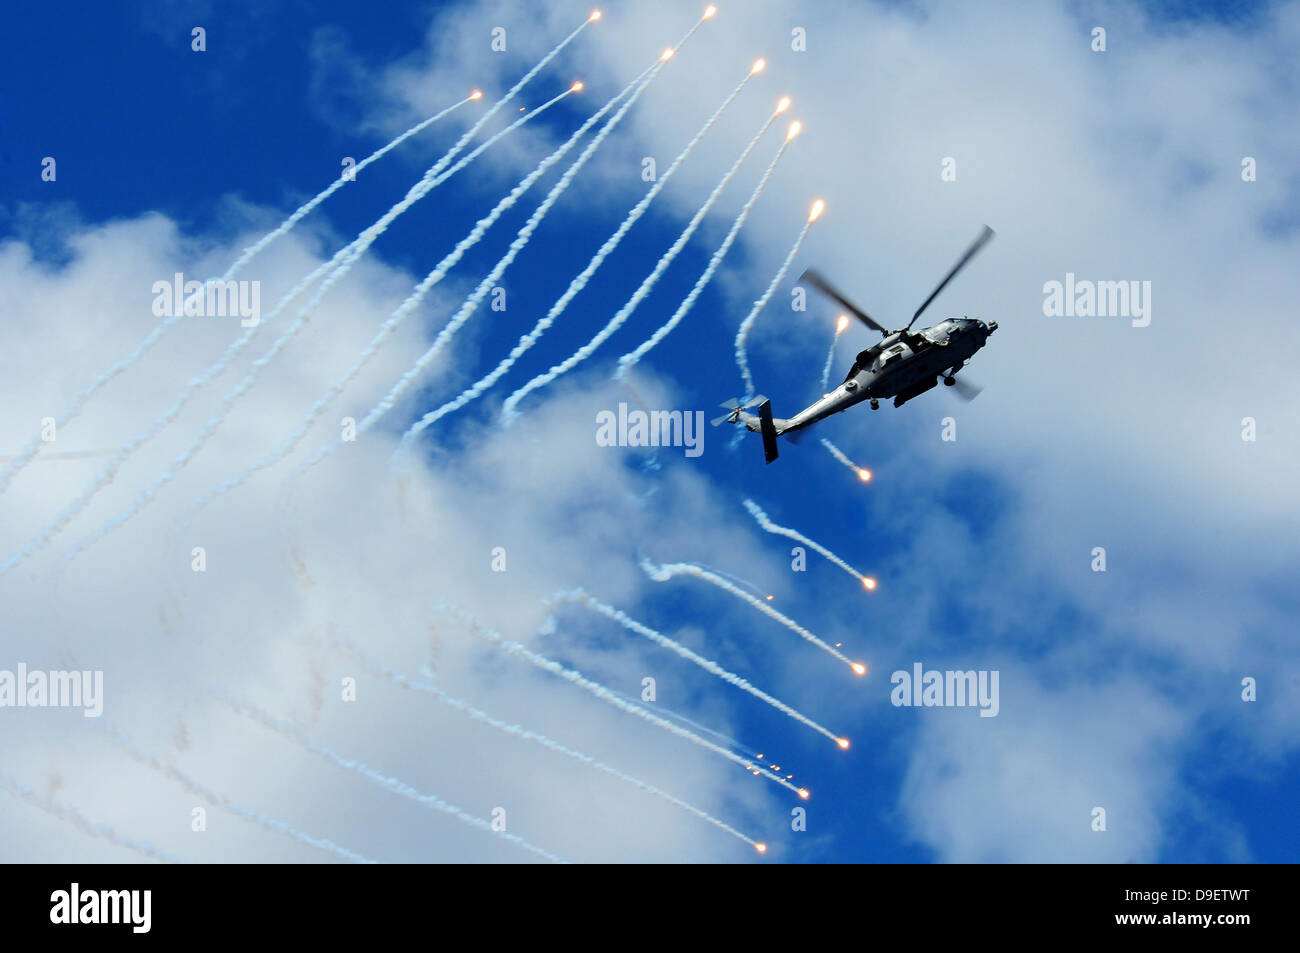 An HH-60H Sea Hawk helicopter releases countermeasure flares. Stock Photo